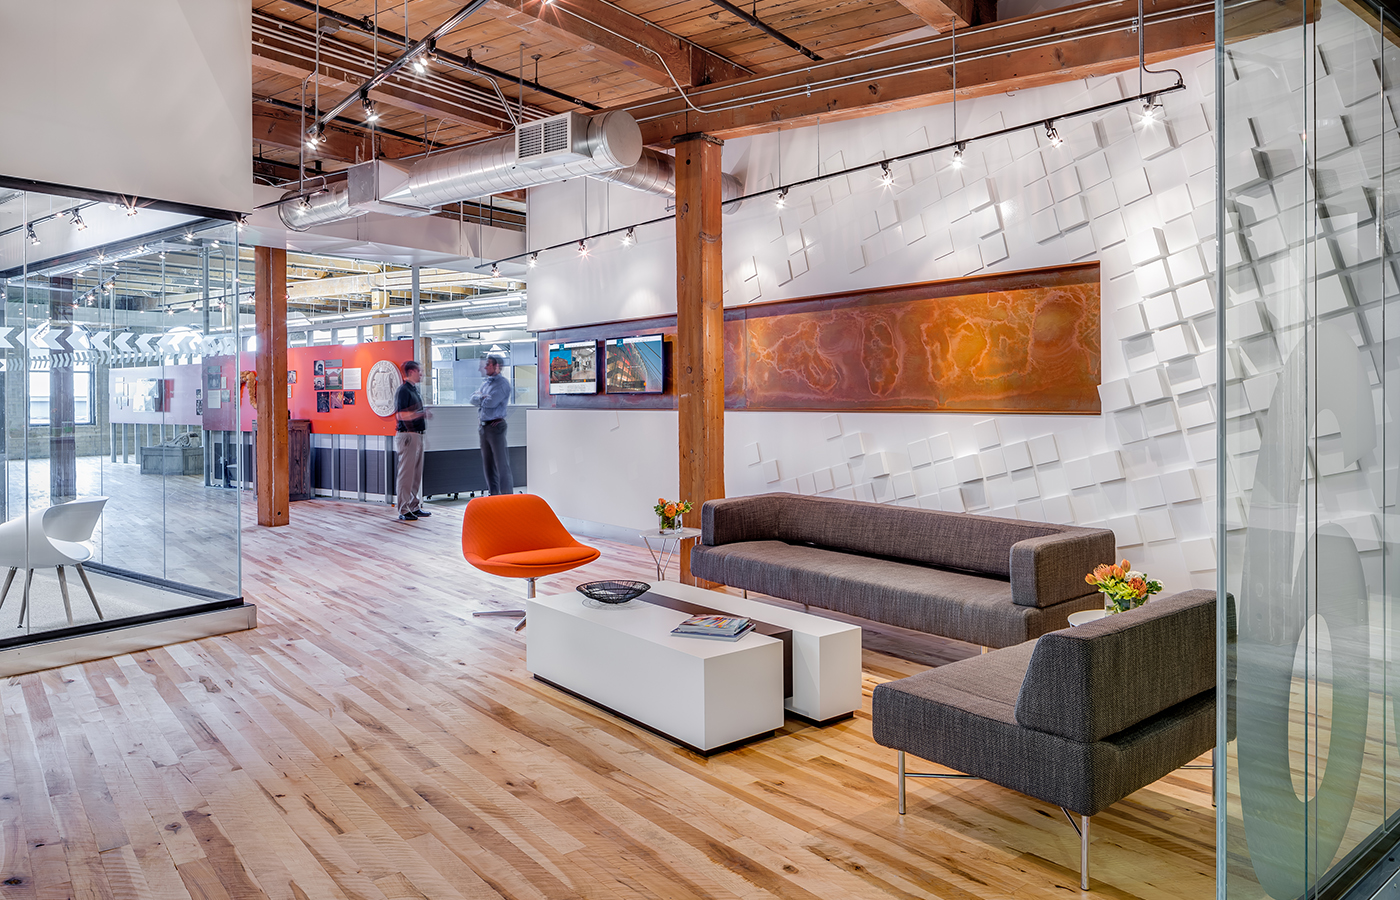 Minneapolis Based Interior Design Firm Studio Hive Joins DLR Group